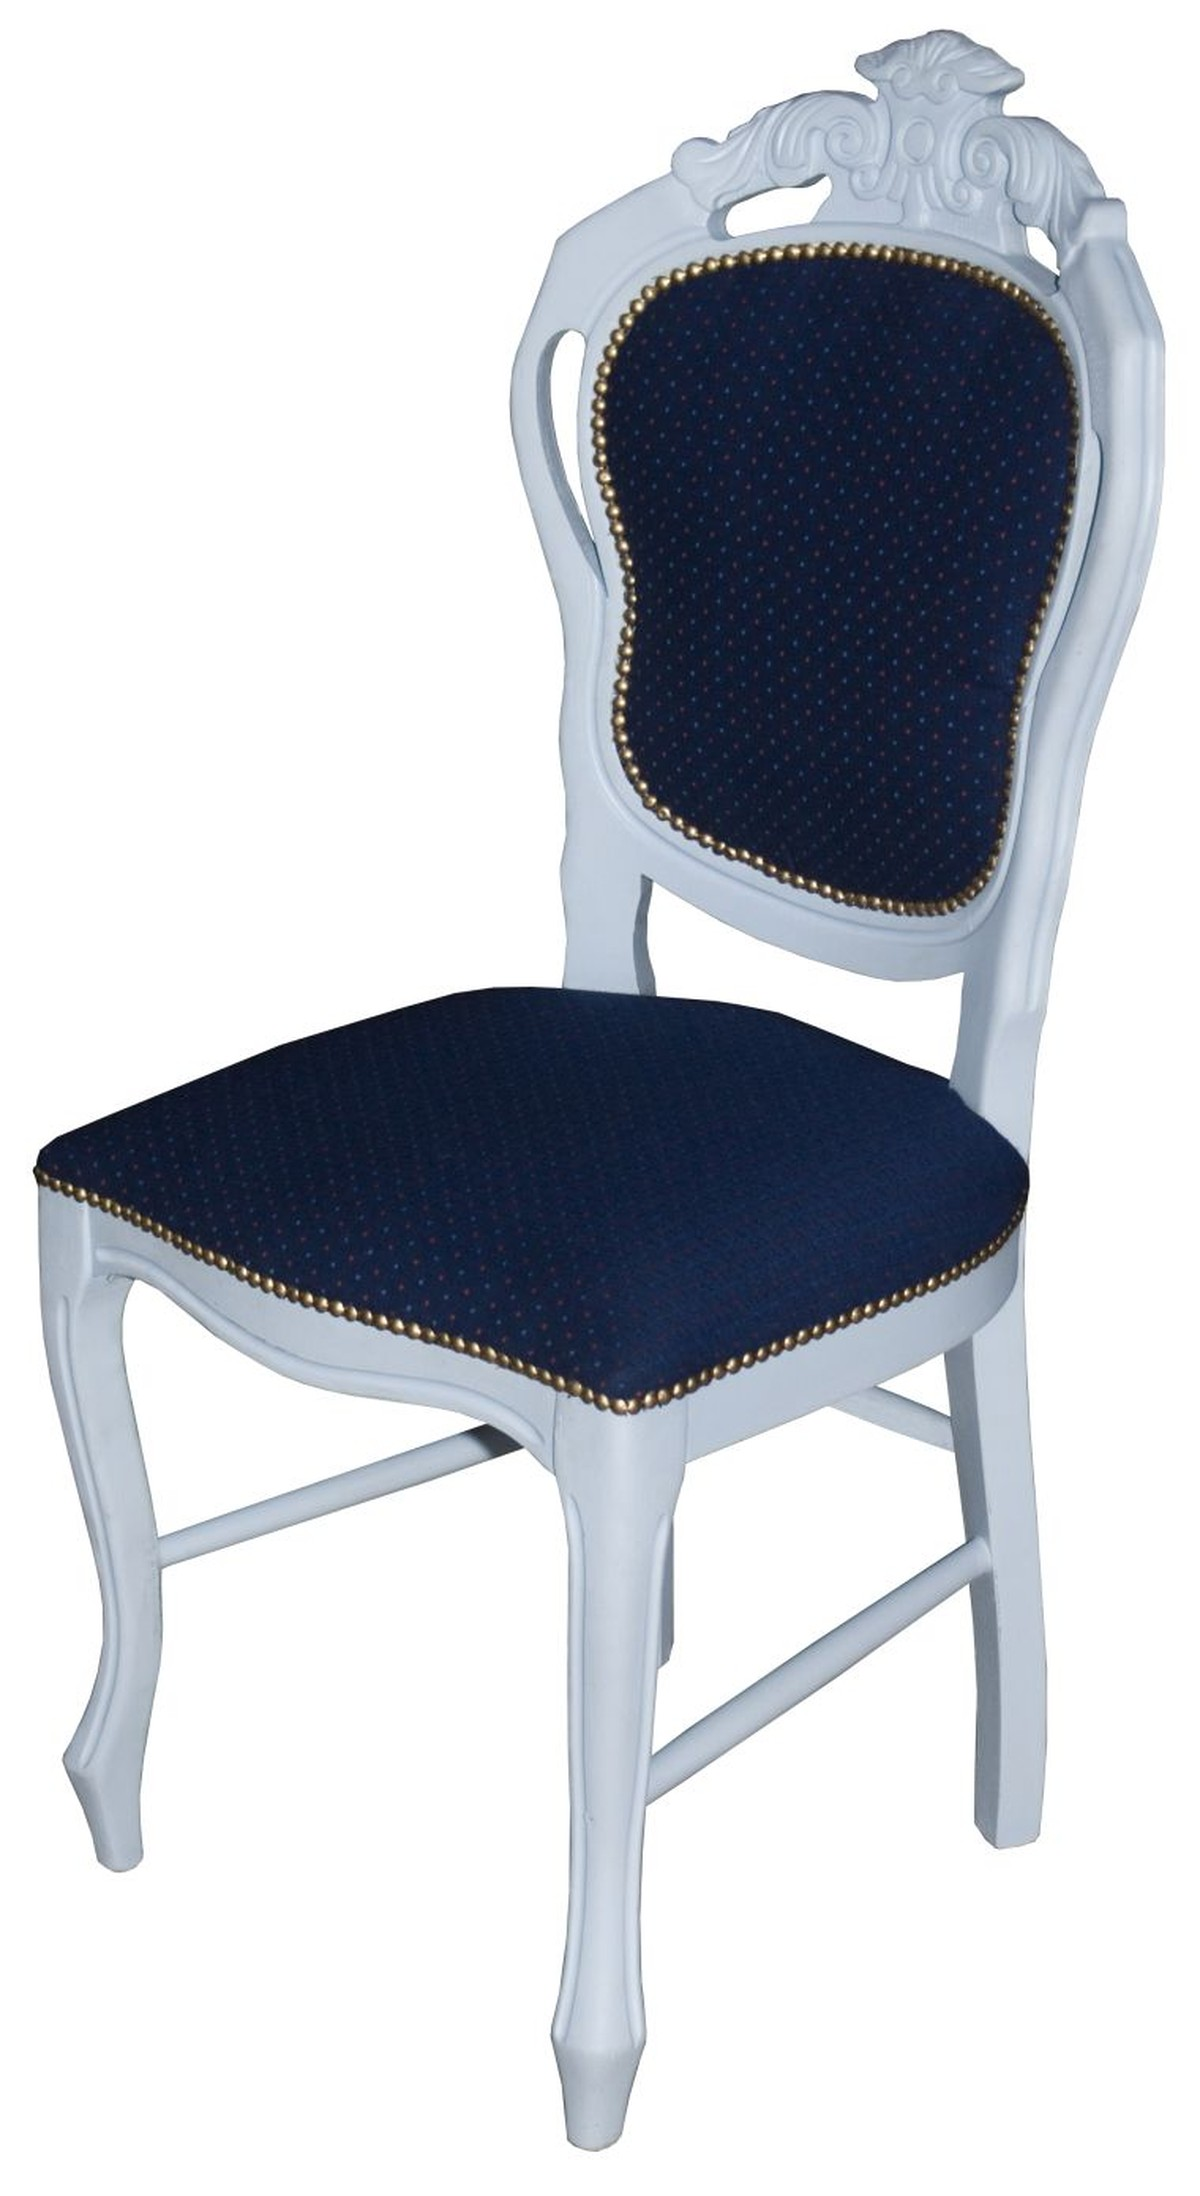 Chair For Sale Secondhand Hotel Furniture Banquet Chair Vintage Sky